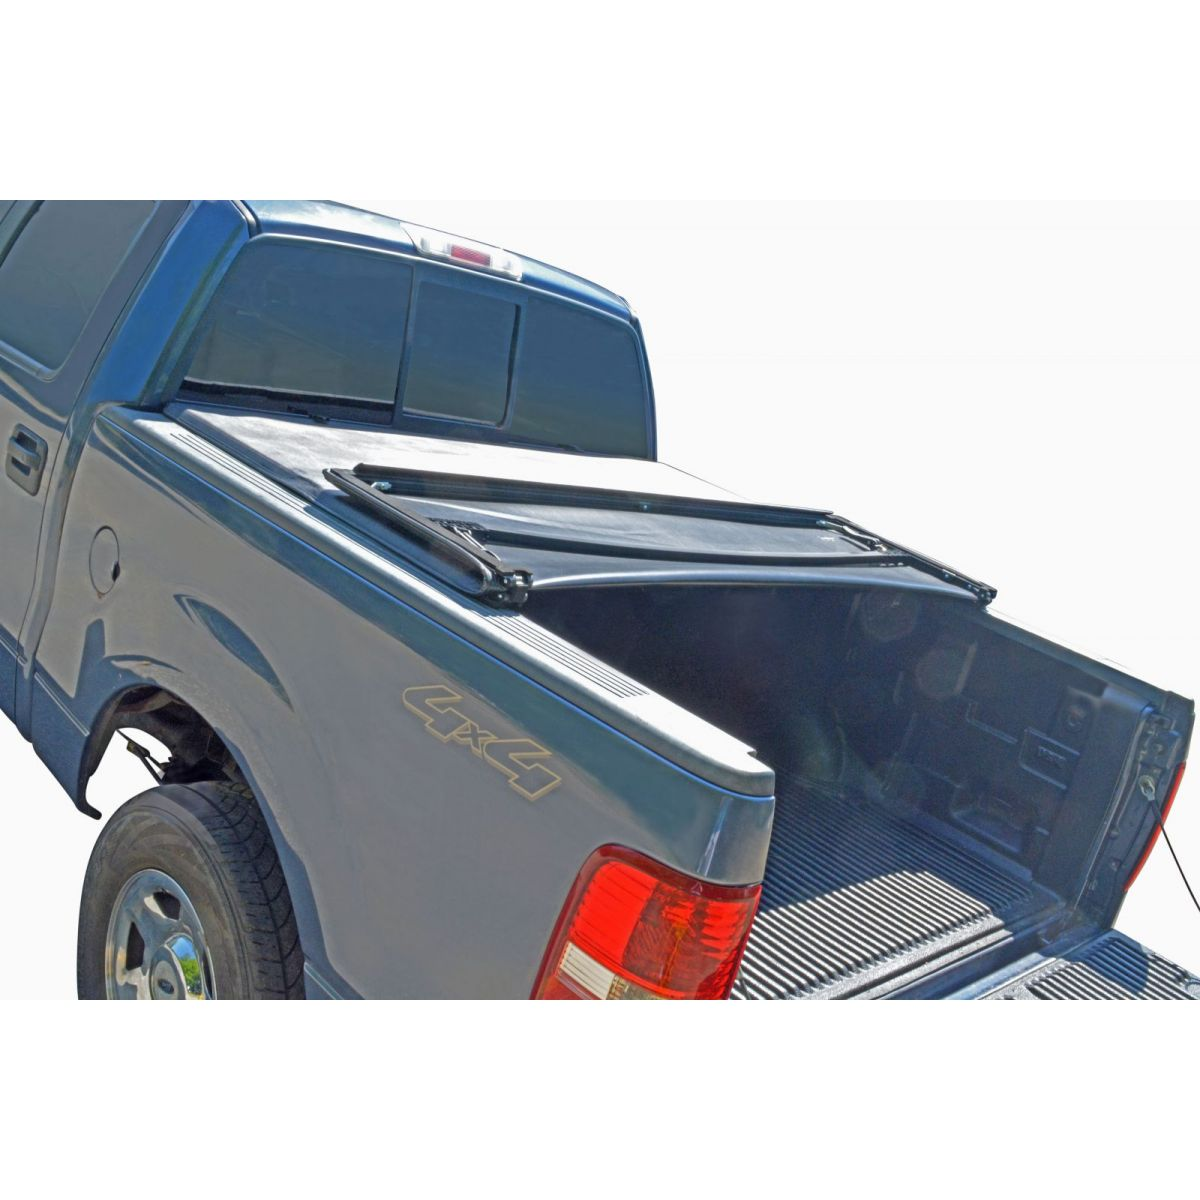 Tonneau Cover Soft Tri Fold For Frontier Crew Cab Pickup Truck 5ft Short Bed New Ebay